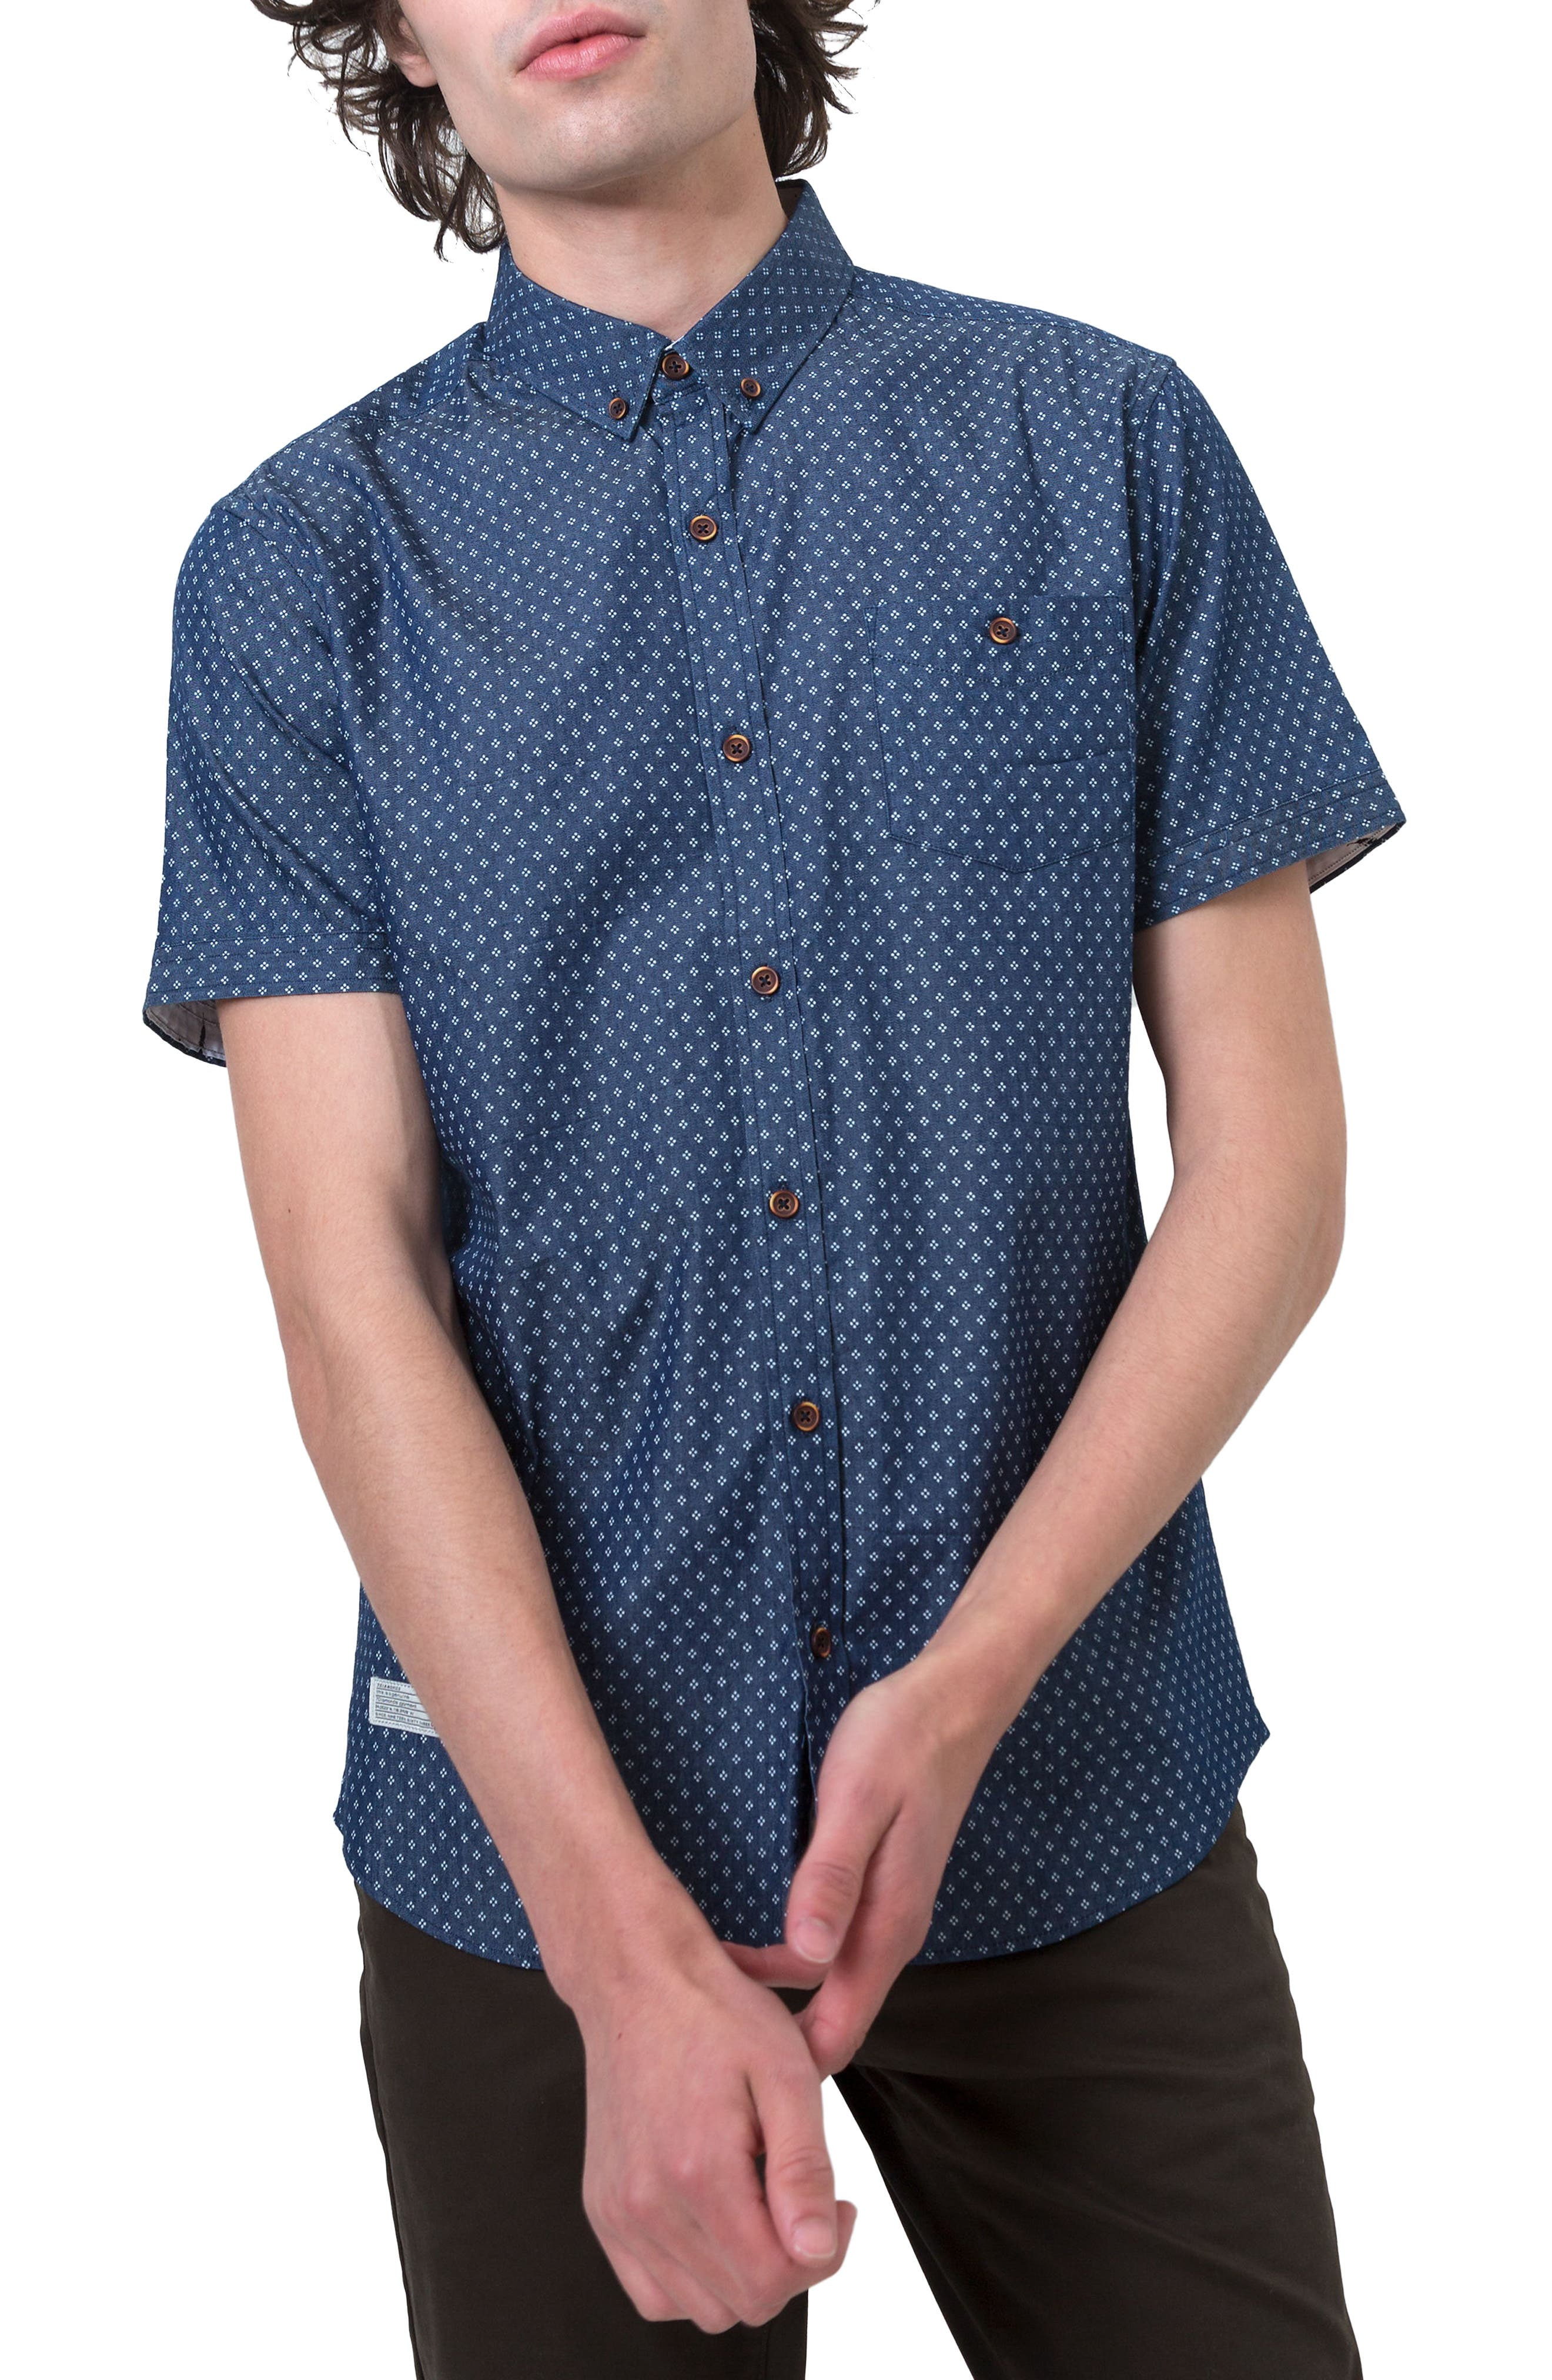 7 Diamonds Livewire Trim Fit Print Short Sleeve Woven Shirt